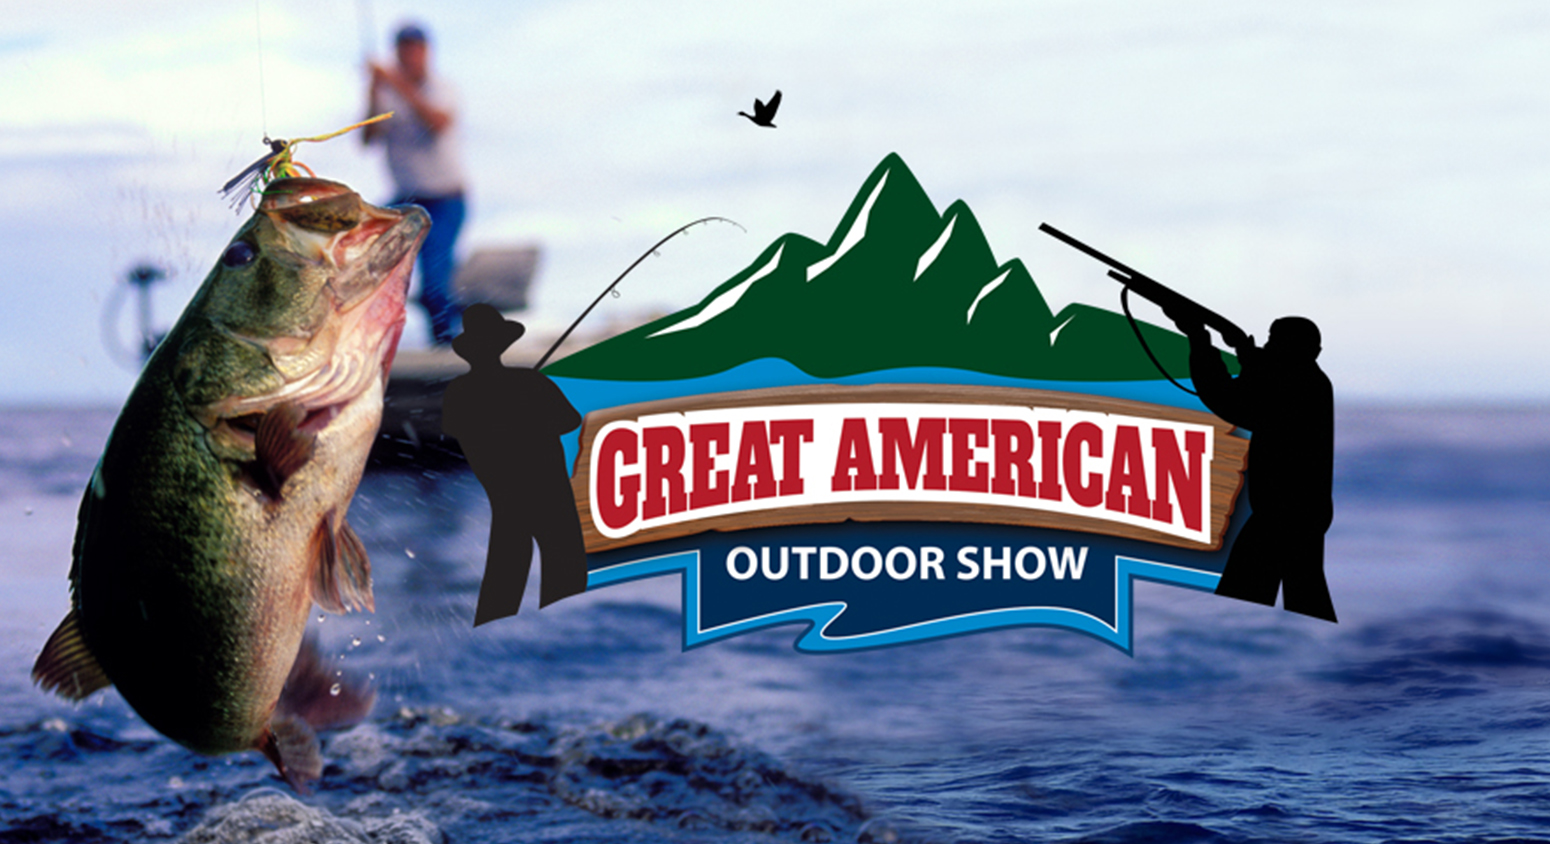 9 Reasons You Should Attend the Great American Outdoor Show